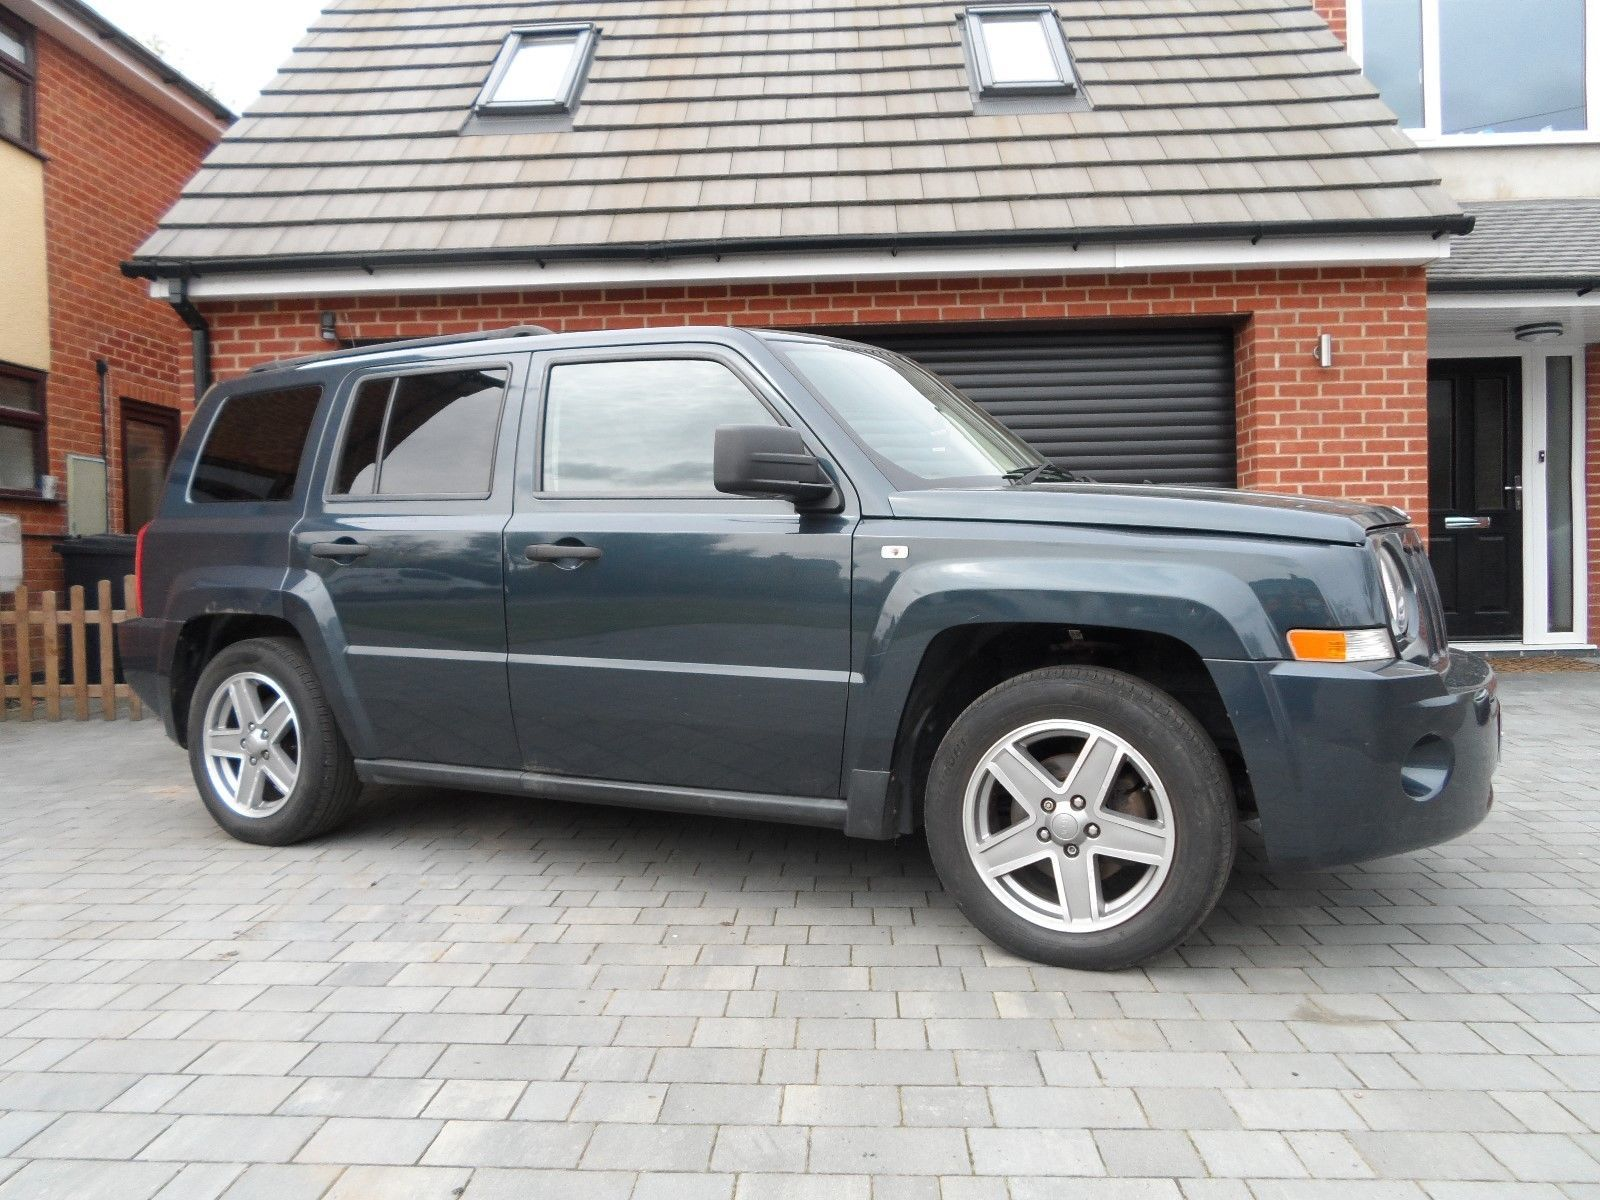 2008 JEEP PATROIT SPORT 2.0 CDR DIESEL 4WD 5 DOOR MANUAL 1 OWNER TOW BAR